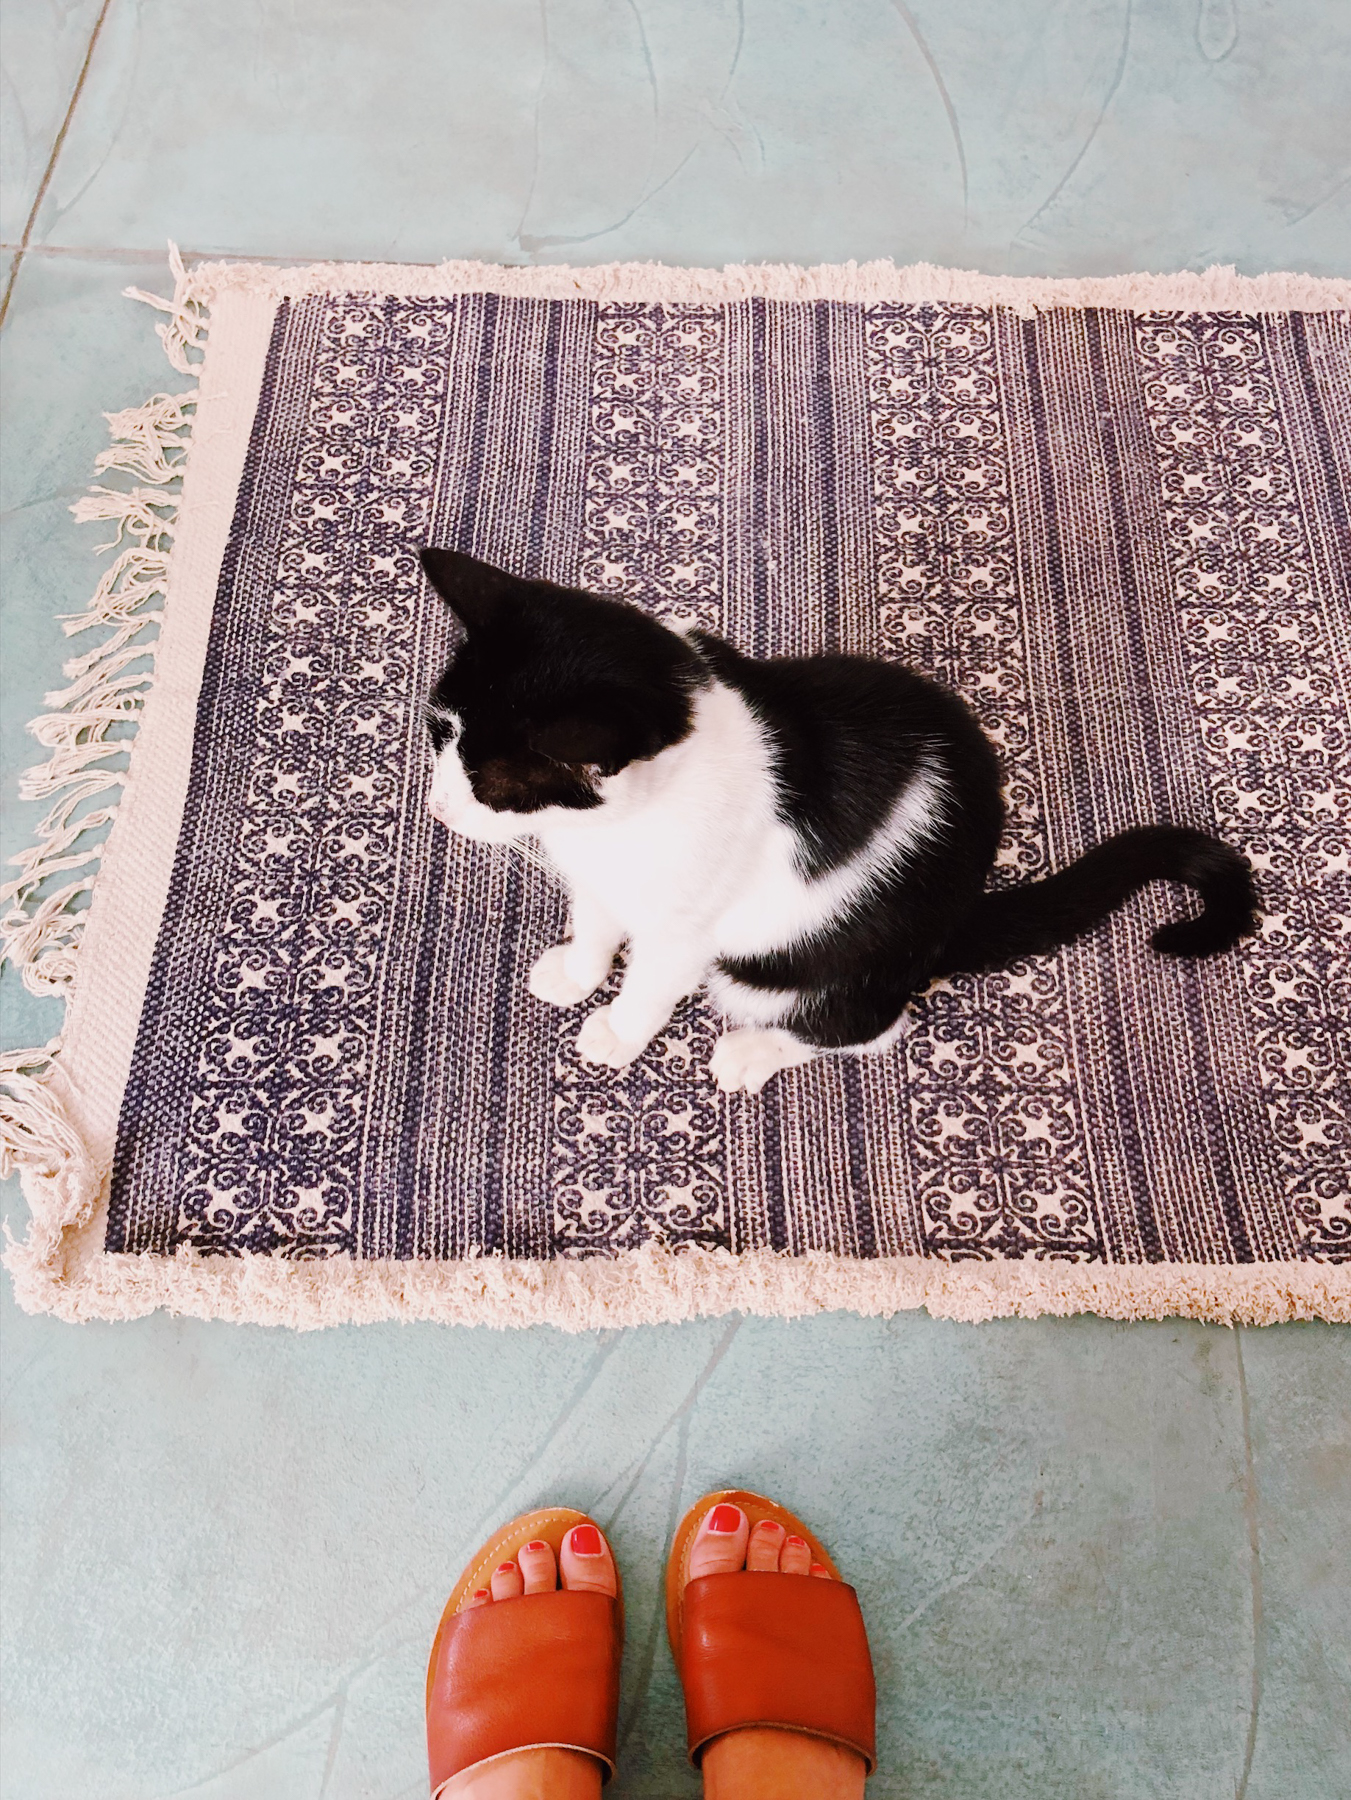 Furry friend at our guest house